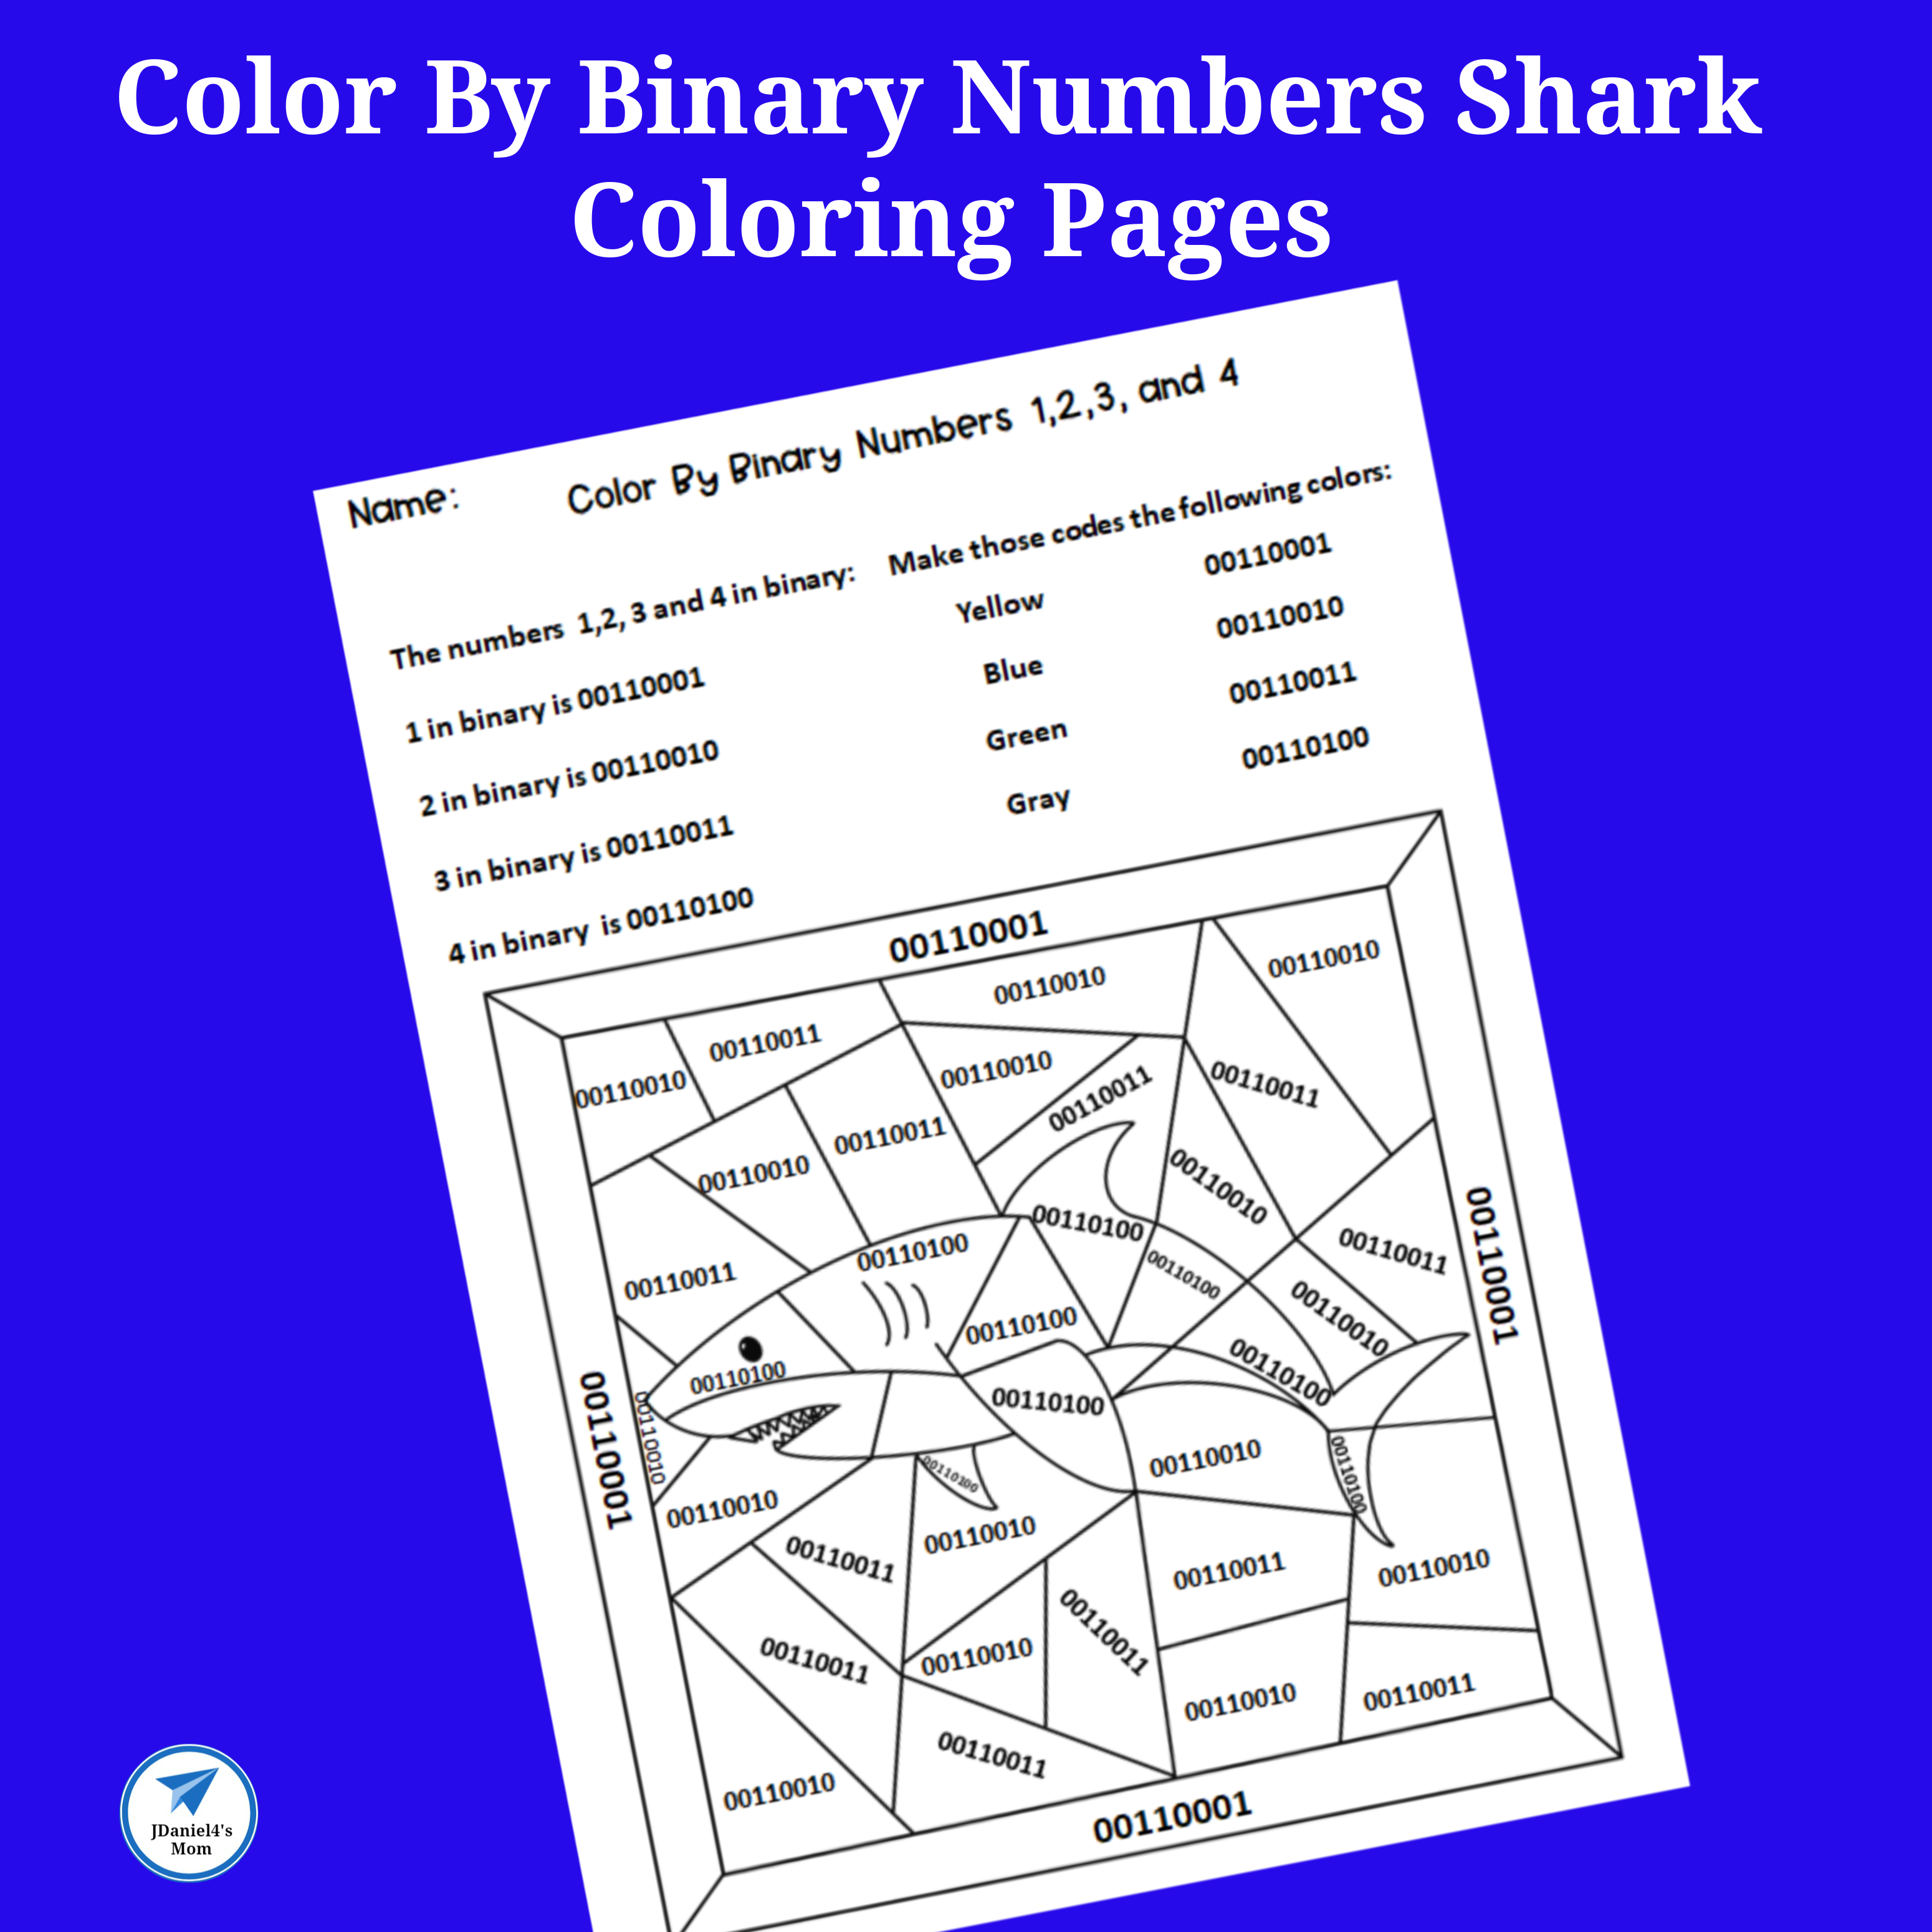 Color By Binary Numbers Shark Coloring Pages